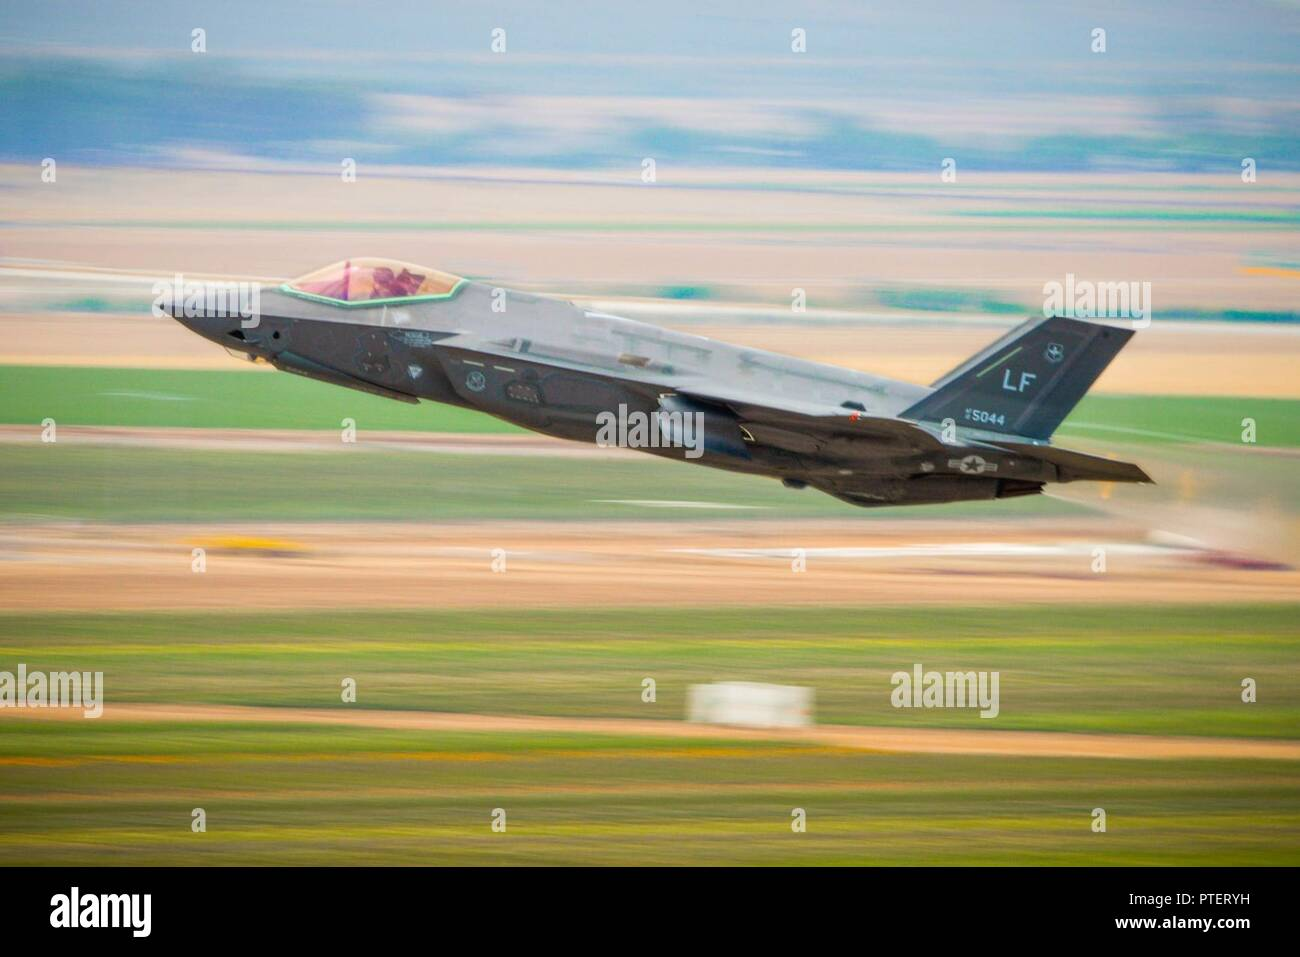 A 56th Fighter Wing F-35A Lightning II pilot takes off from Luke Air Force Base, Ariz., July 17, 2017. F-35 basic course students took part in a two and a half week, four flight phase replicating a wartime environment designed to test their training and skills. Today's flight featured six F-35's facing off against eight F-16 Fighting Falcons in defensive counter air attack operation measures. The students will be the first ever to graduate from a course designed specifically to utilize the mission set of the F-35. - Stock Image